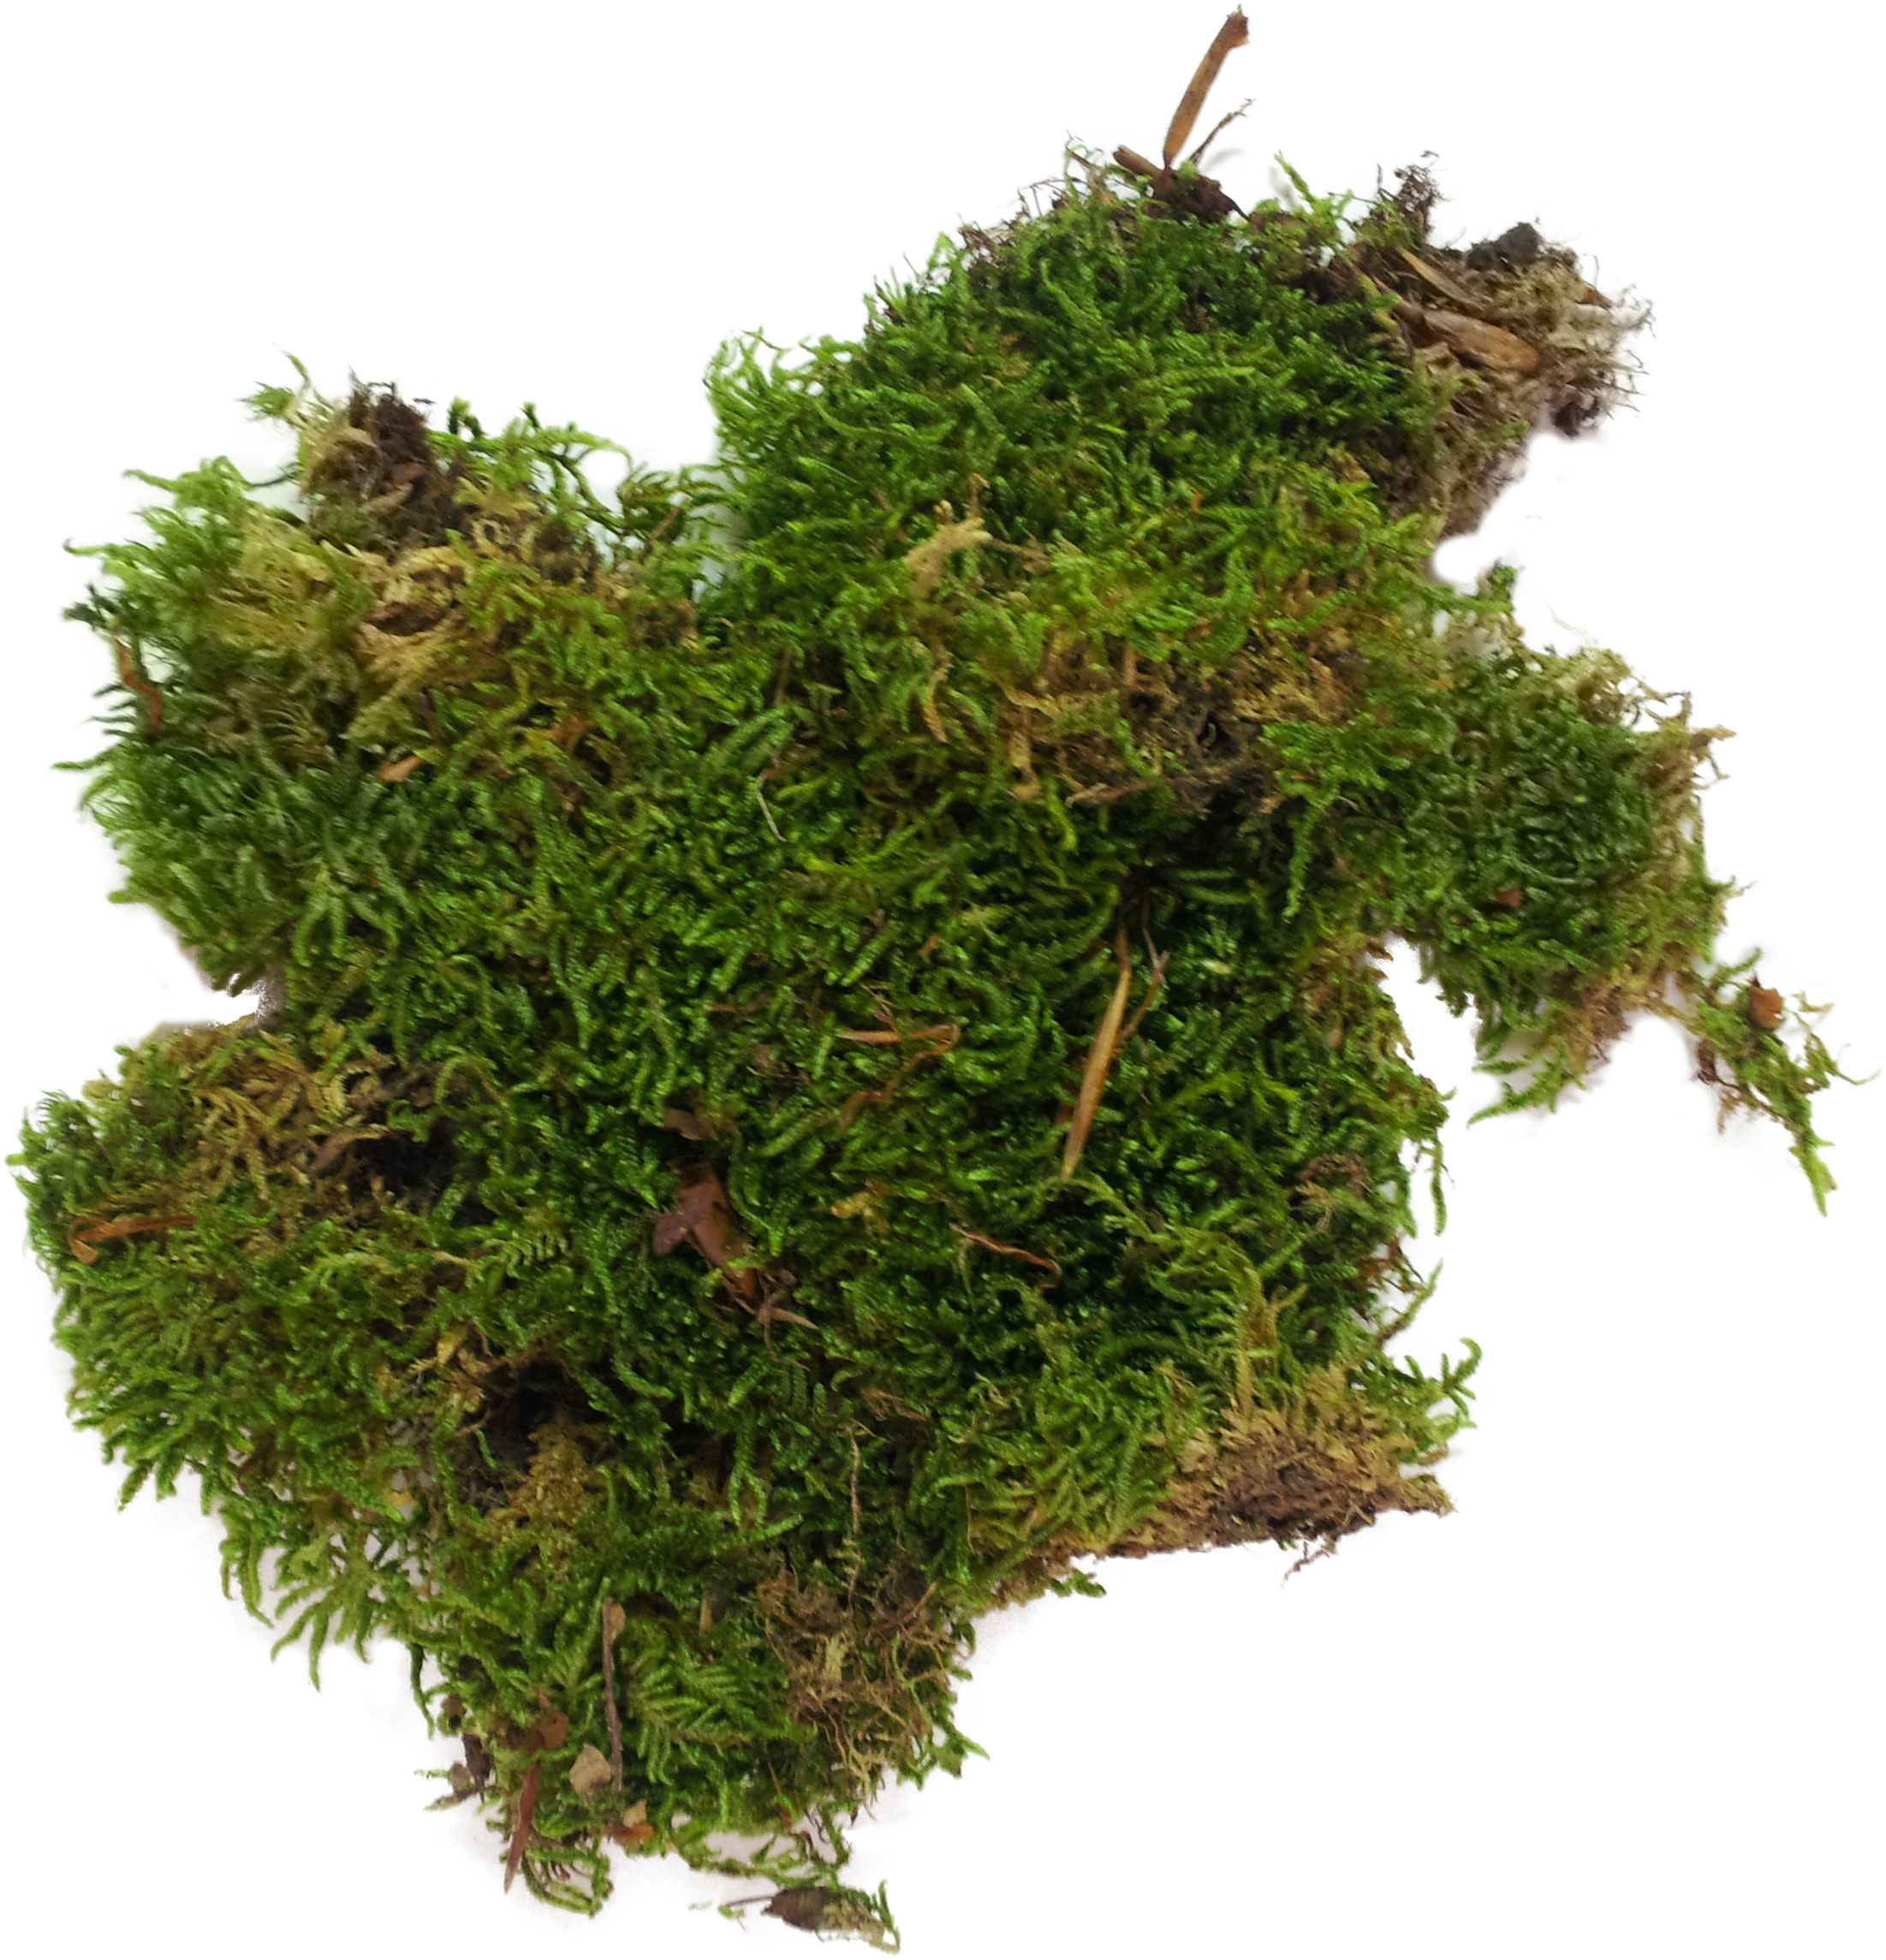 Great For Your Terrariums And Crafting 6 99 A Gallon Bag Of Moss